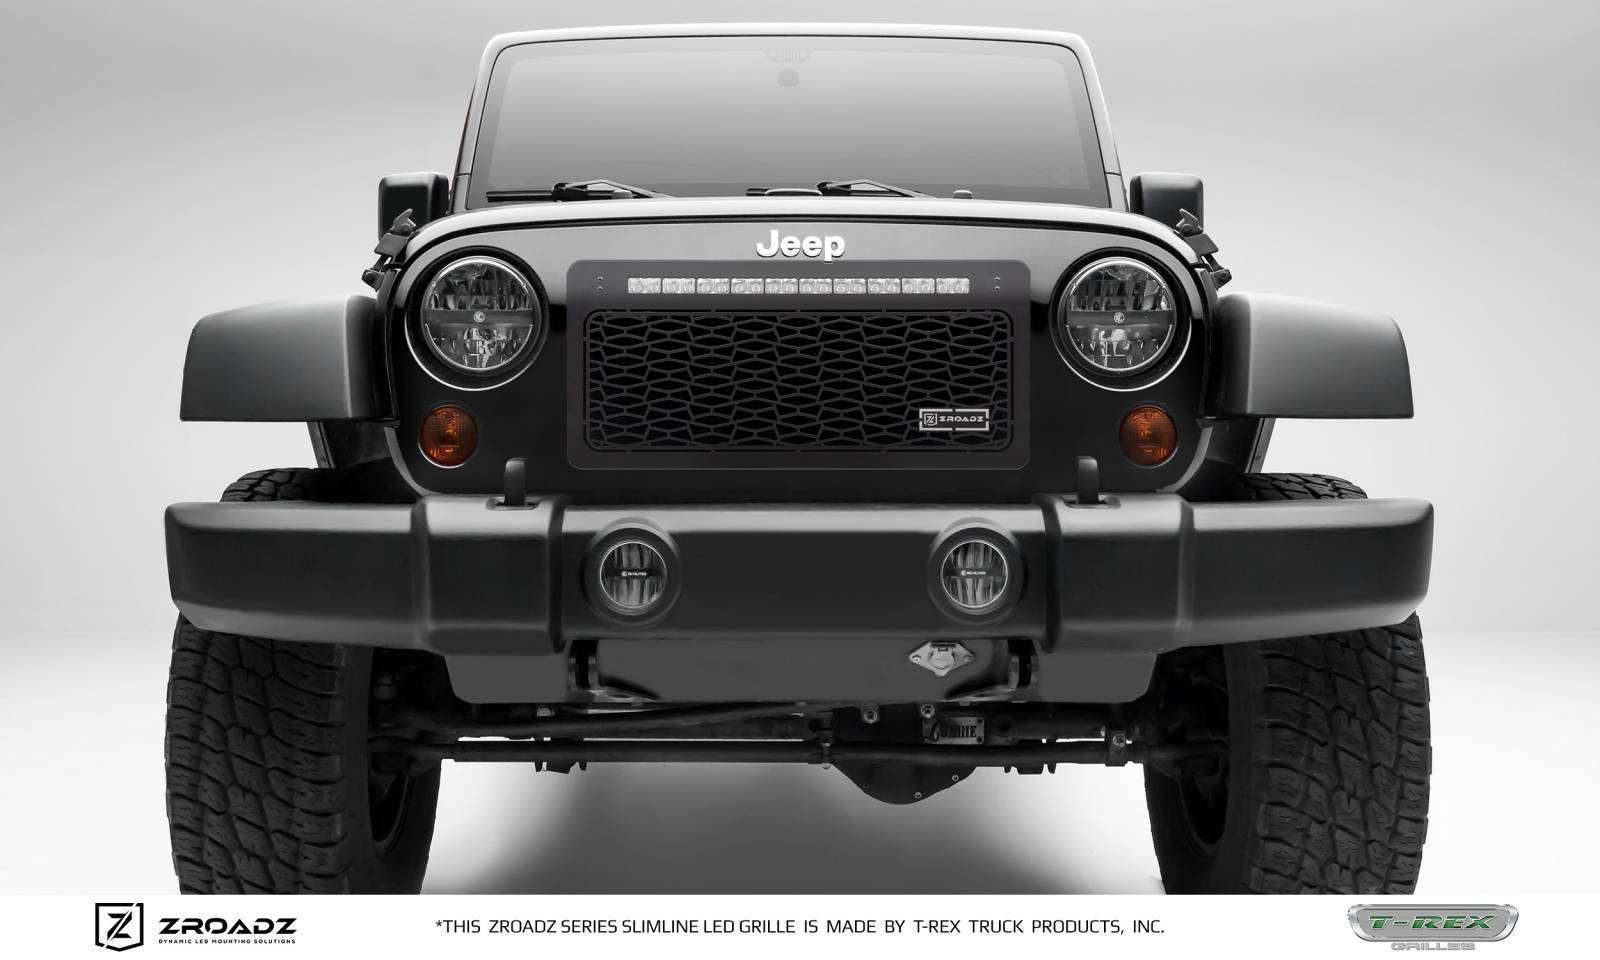 T-REX Jeep Wrangler - ZROADZ Series - Main Insert - Grille w/ One 20 Inch Slim Line Single Row LED Light Bar - Includes Universal Wiring Harness - Part# Z314831-20T